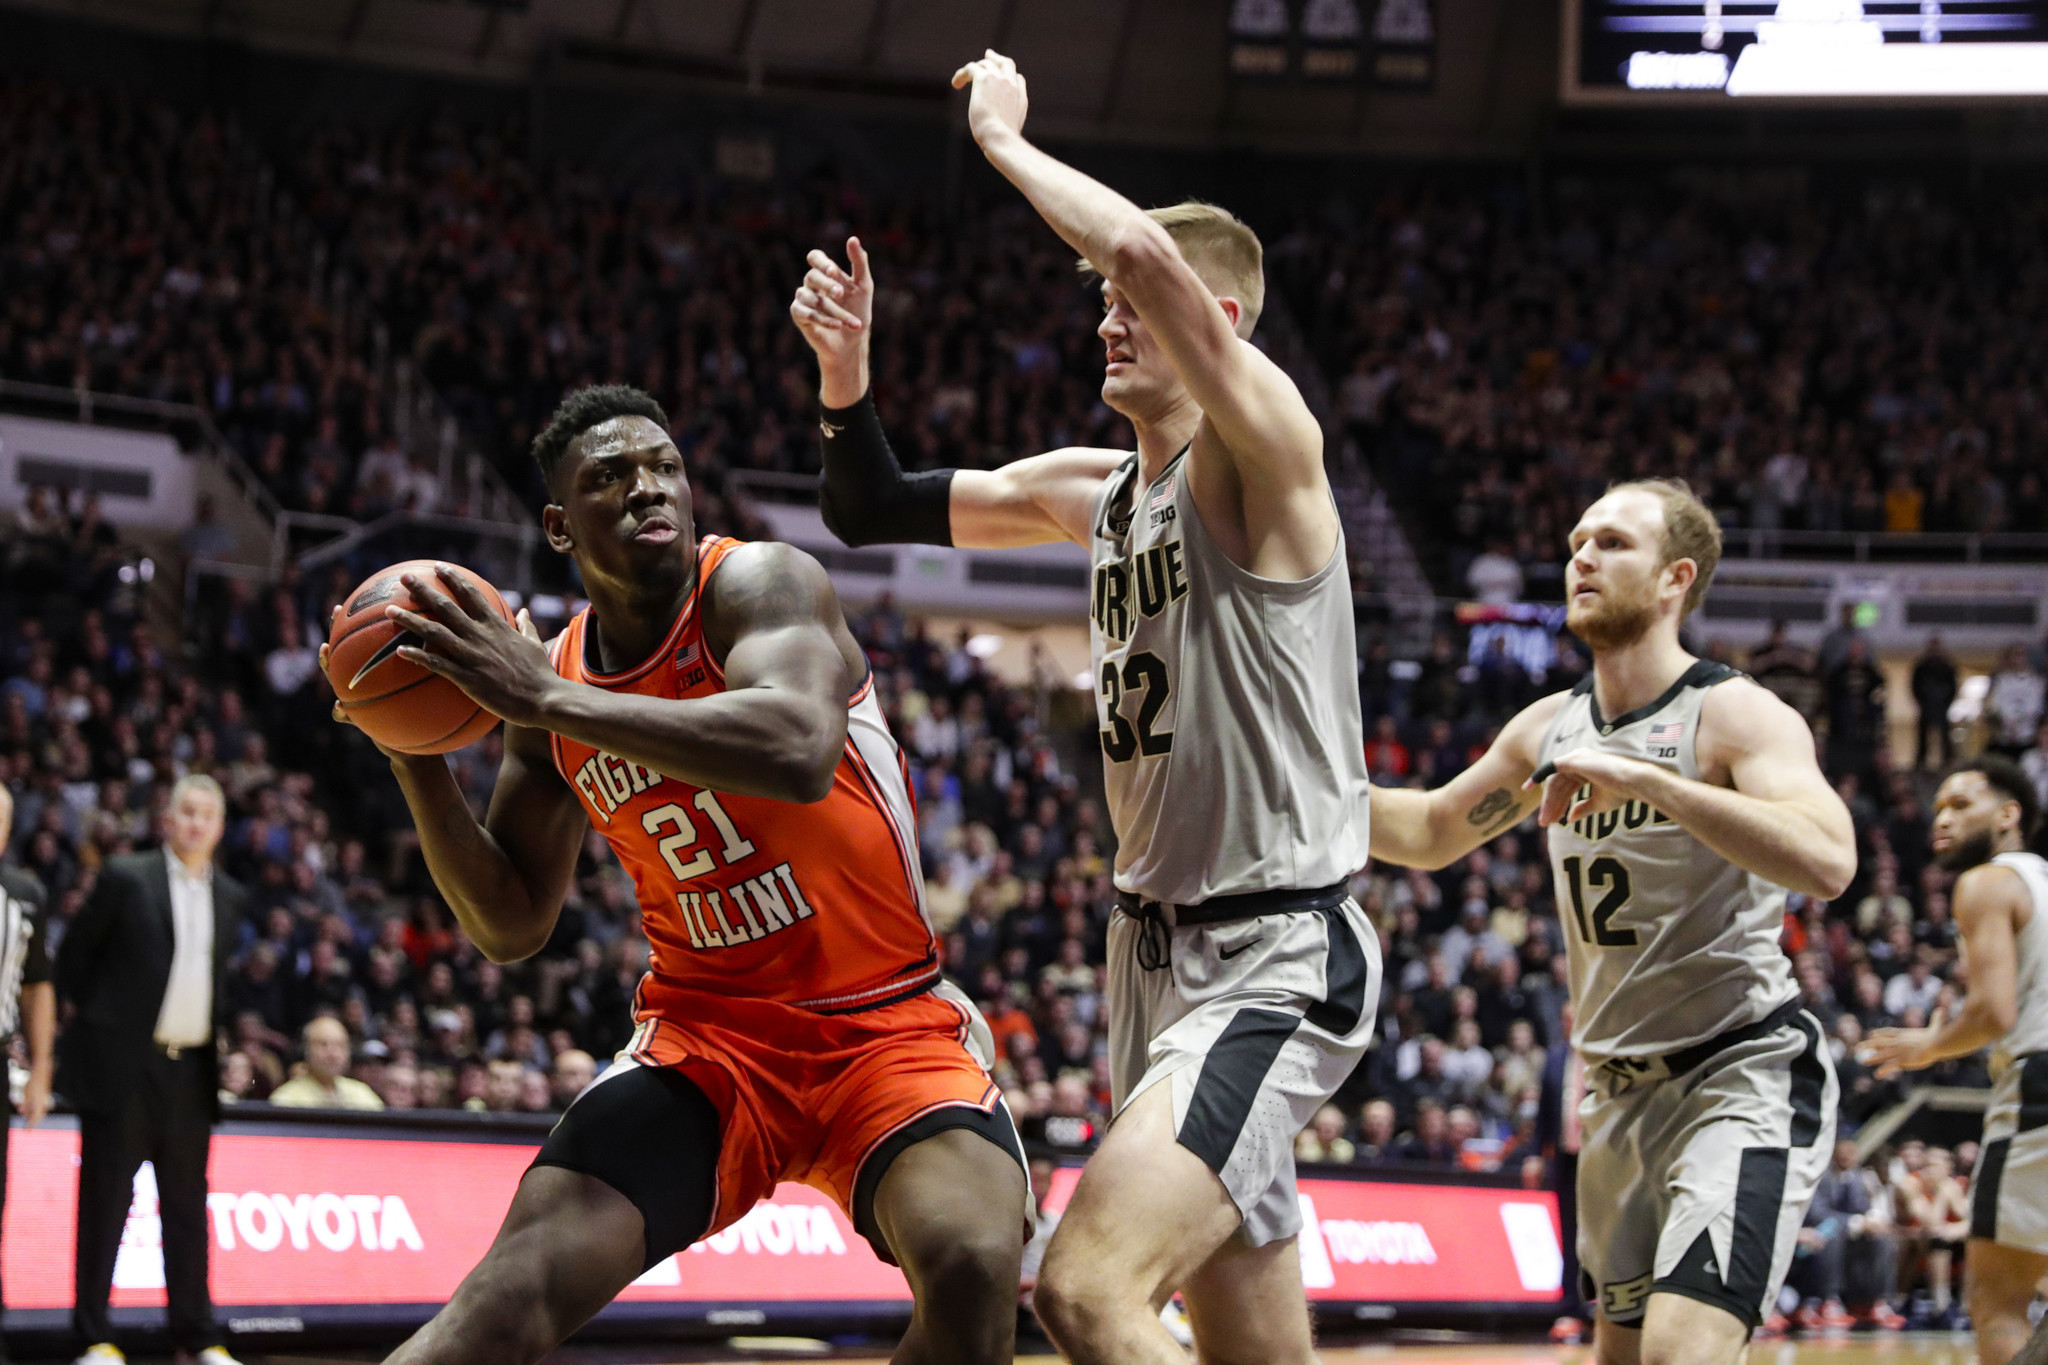 No. 21 Illinois wins its 5th straight, 79-62 at Purdue, behind double-doubles by Kofi Cockburn and Ayo Dosunmu